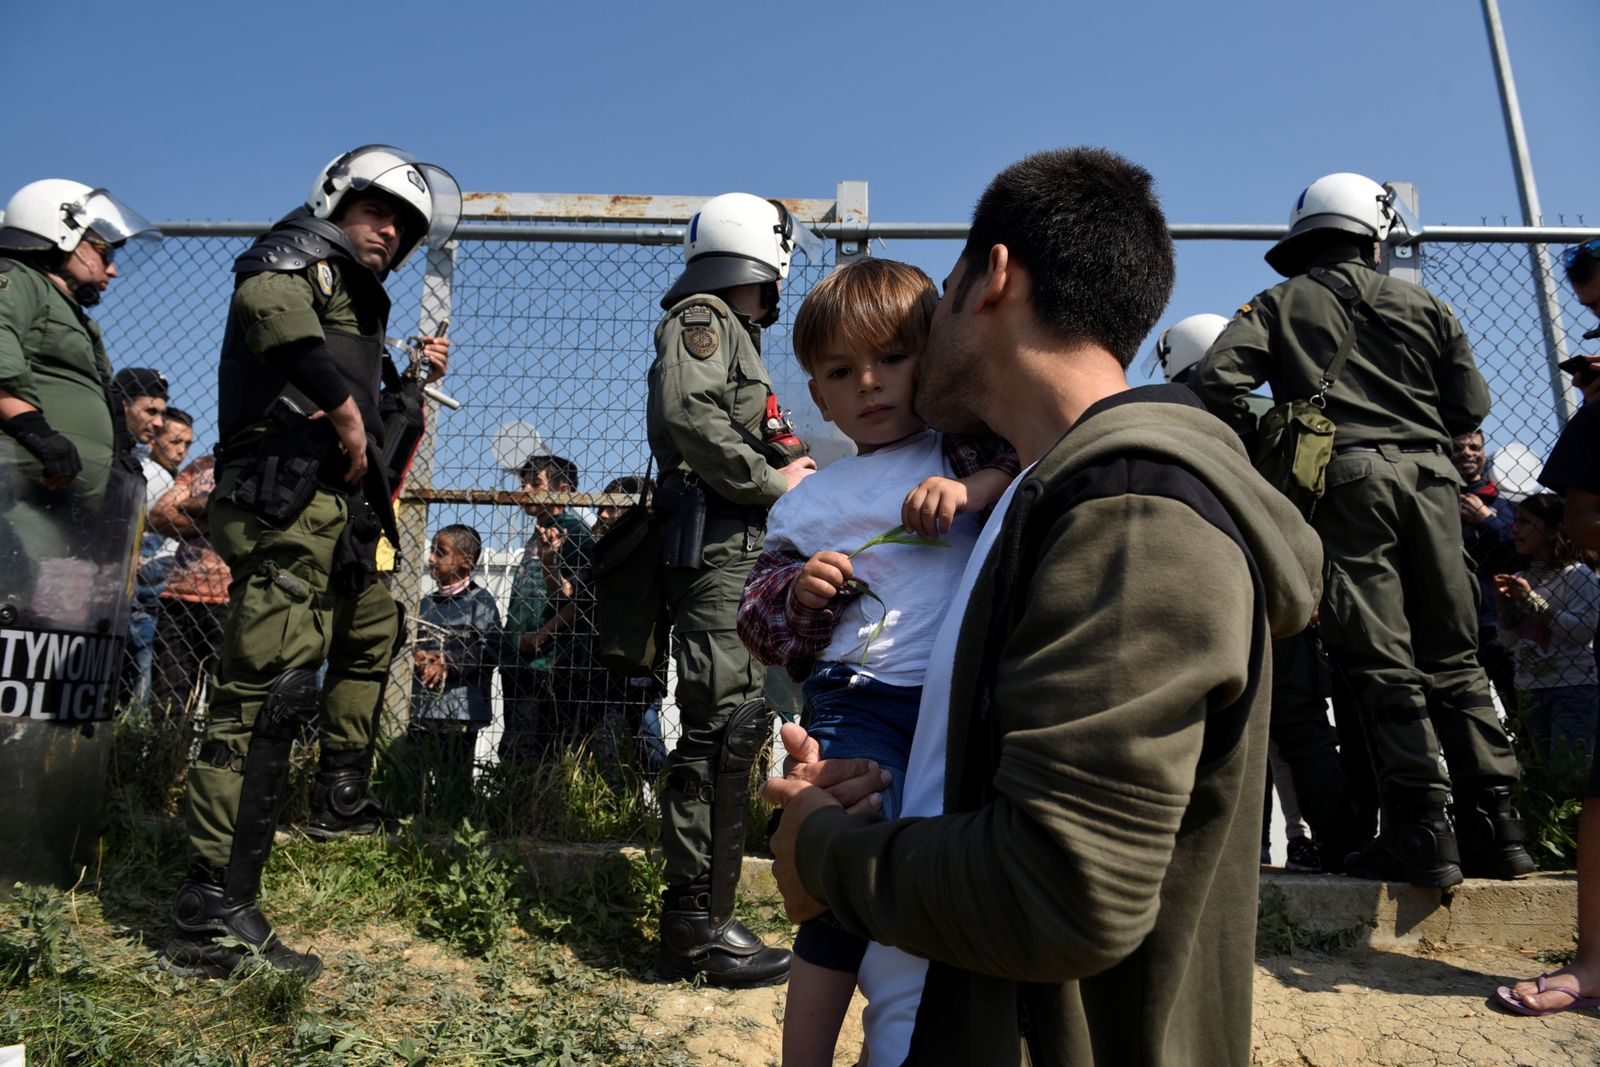 A man holds a child as he stands in front of a riot police cordon next to a camp in the town of Diavata in northern Greece